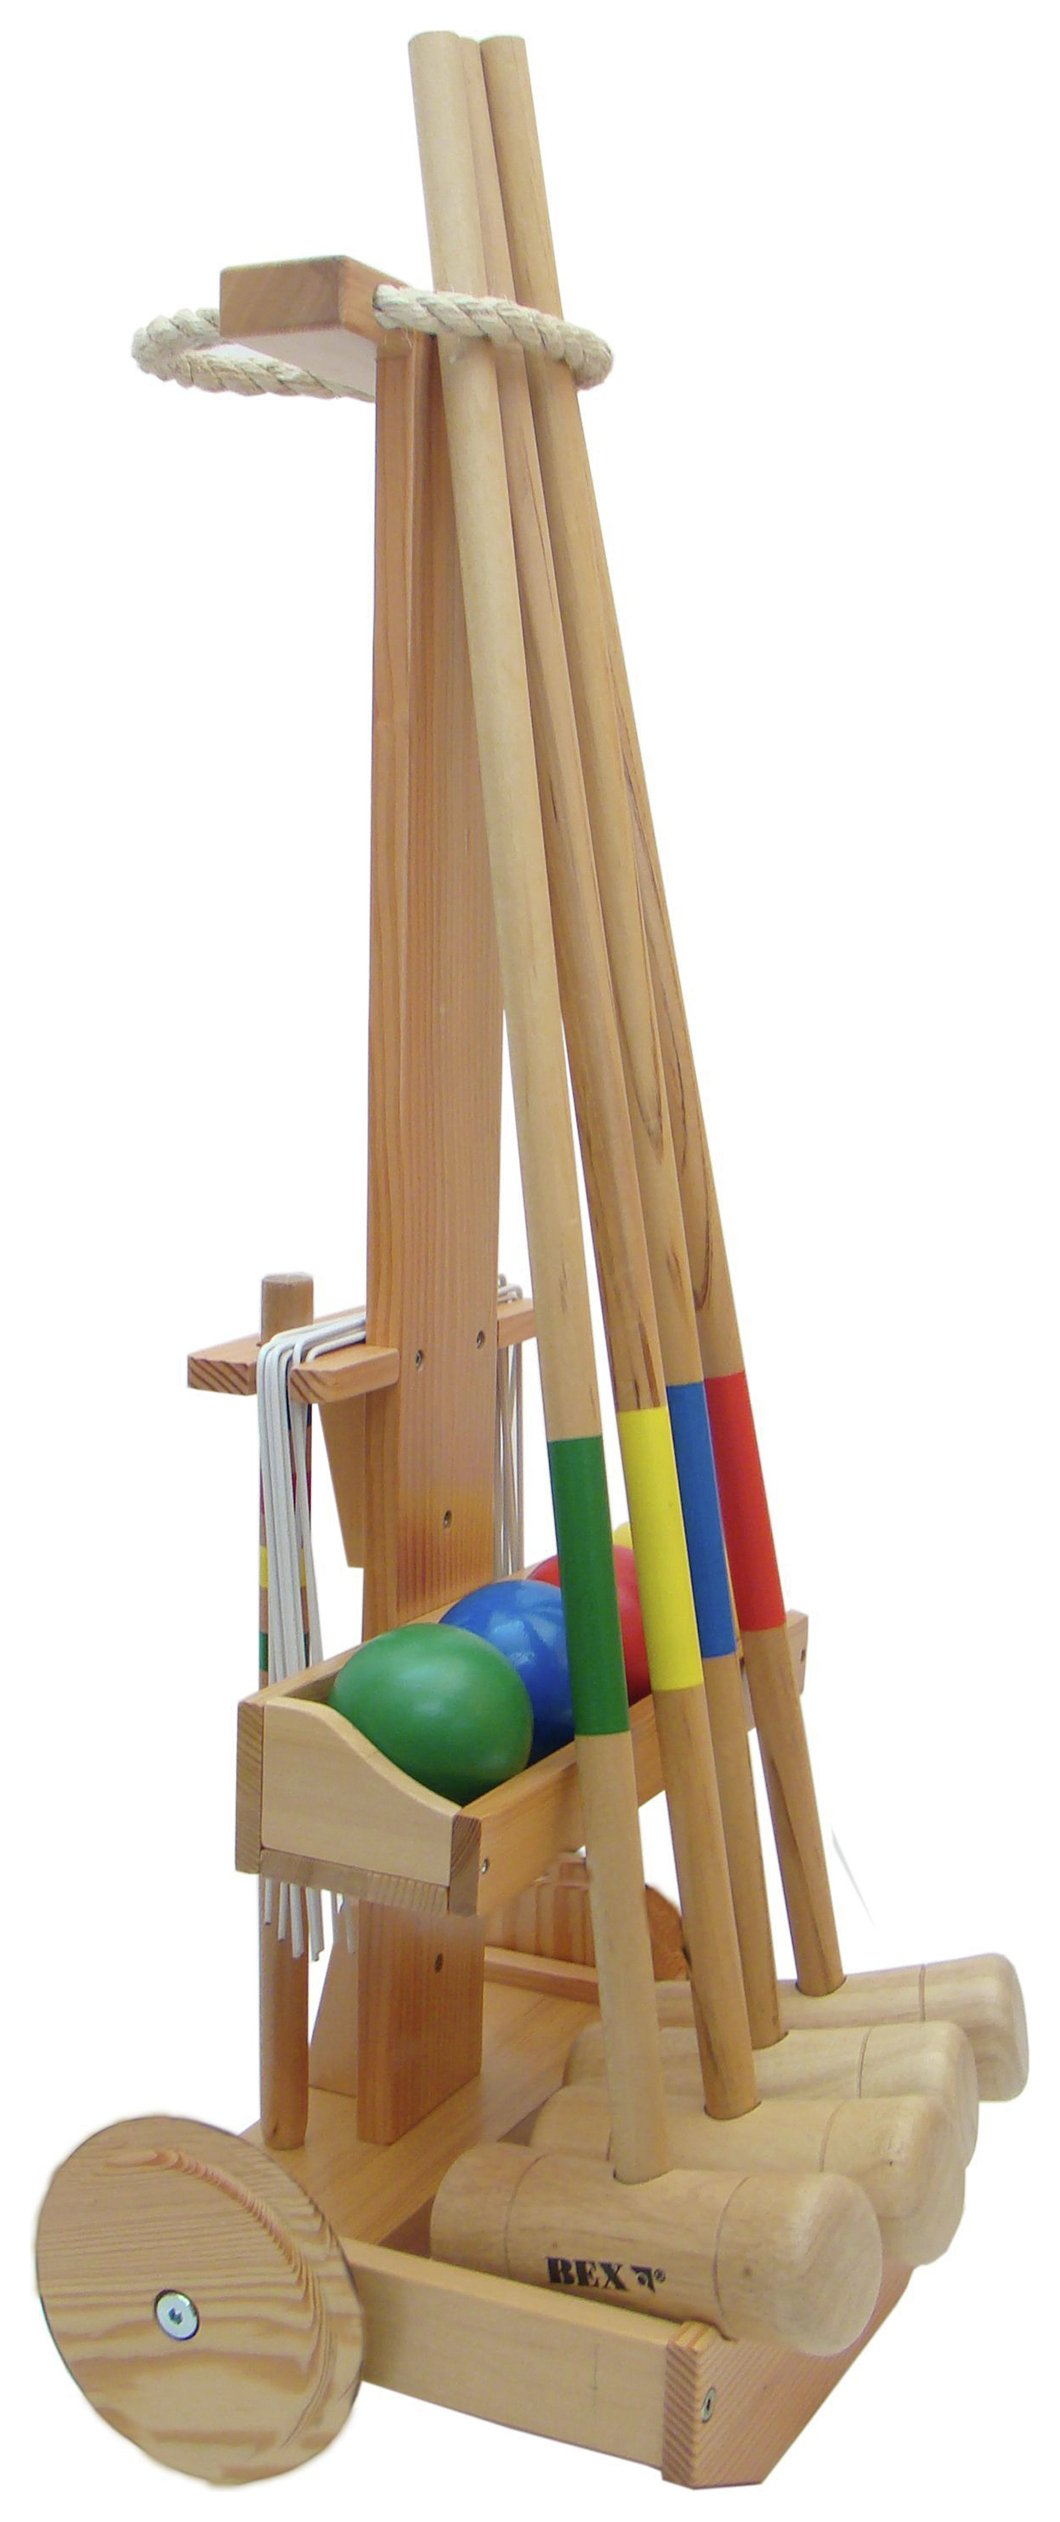 Image of Croquet Original Set with Trolley.